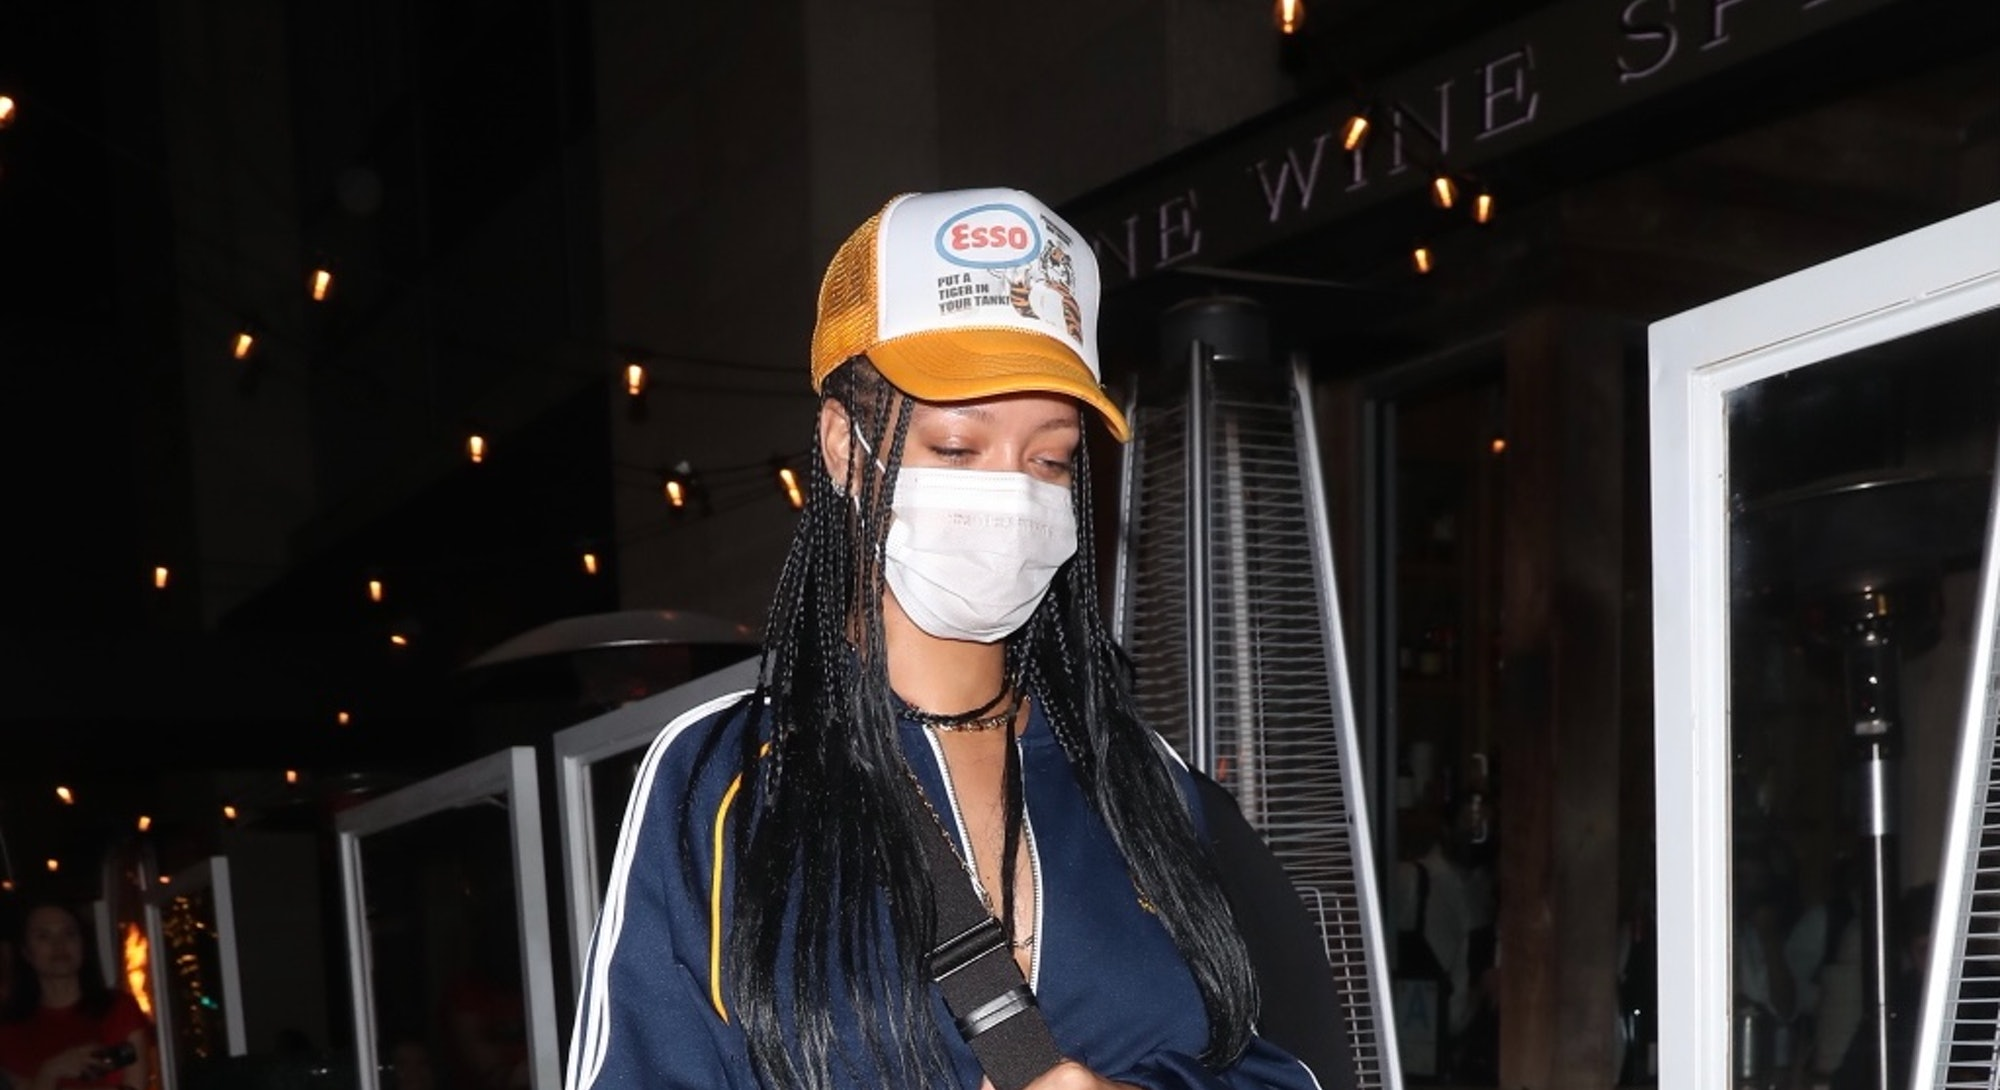 LOS ANGELES CA - APRIL 12:  Rihanna is seen at Wallys on April 12, 2021 in Los Angeles, California. (Photo by 007 / photographer group /MEGA/GC Images)